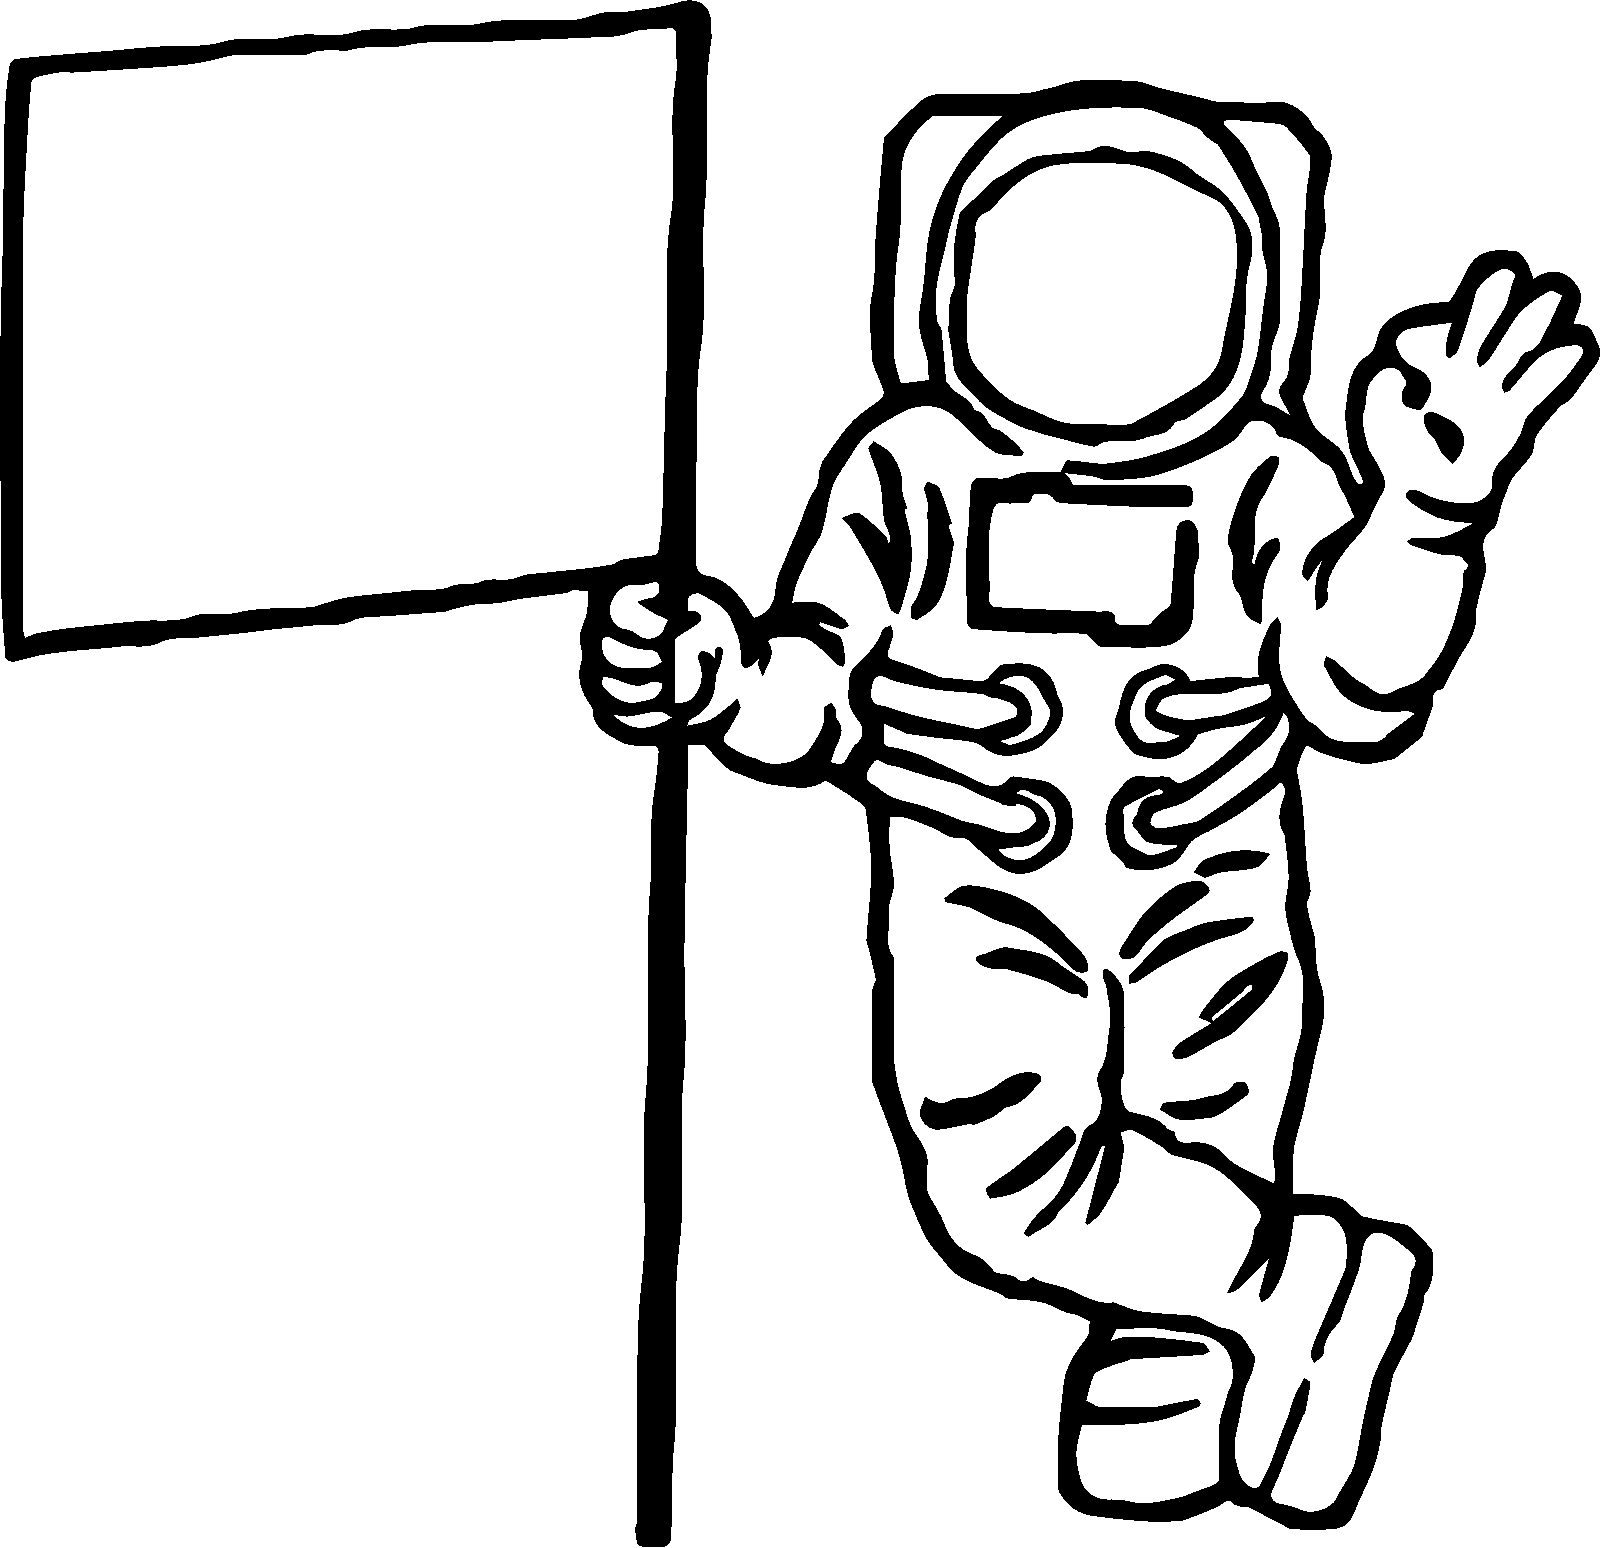 astronaut coloring pages - astronaut flag coloring page